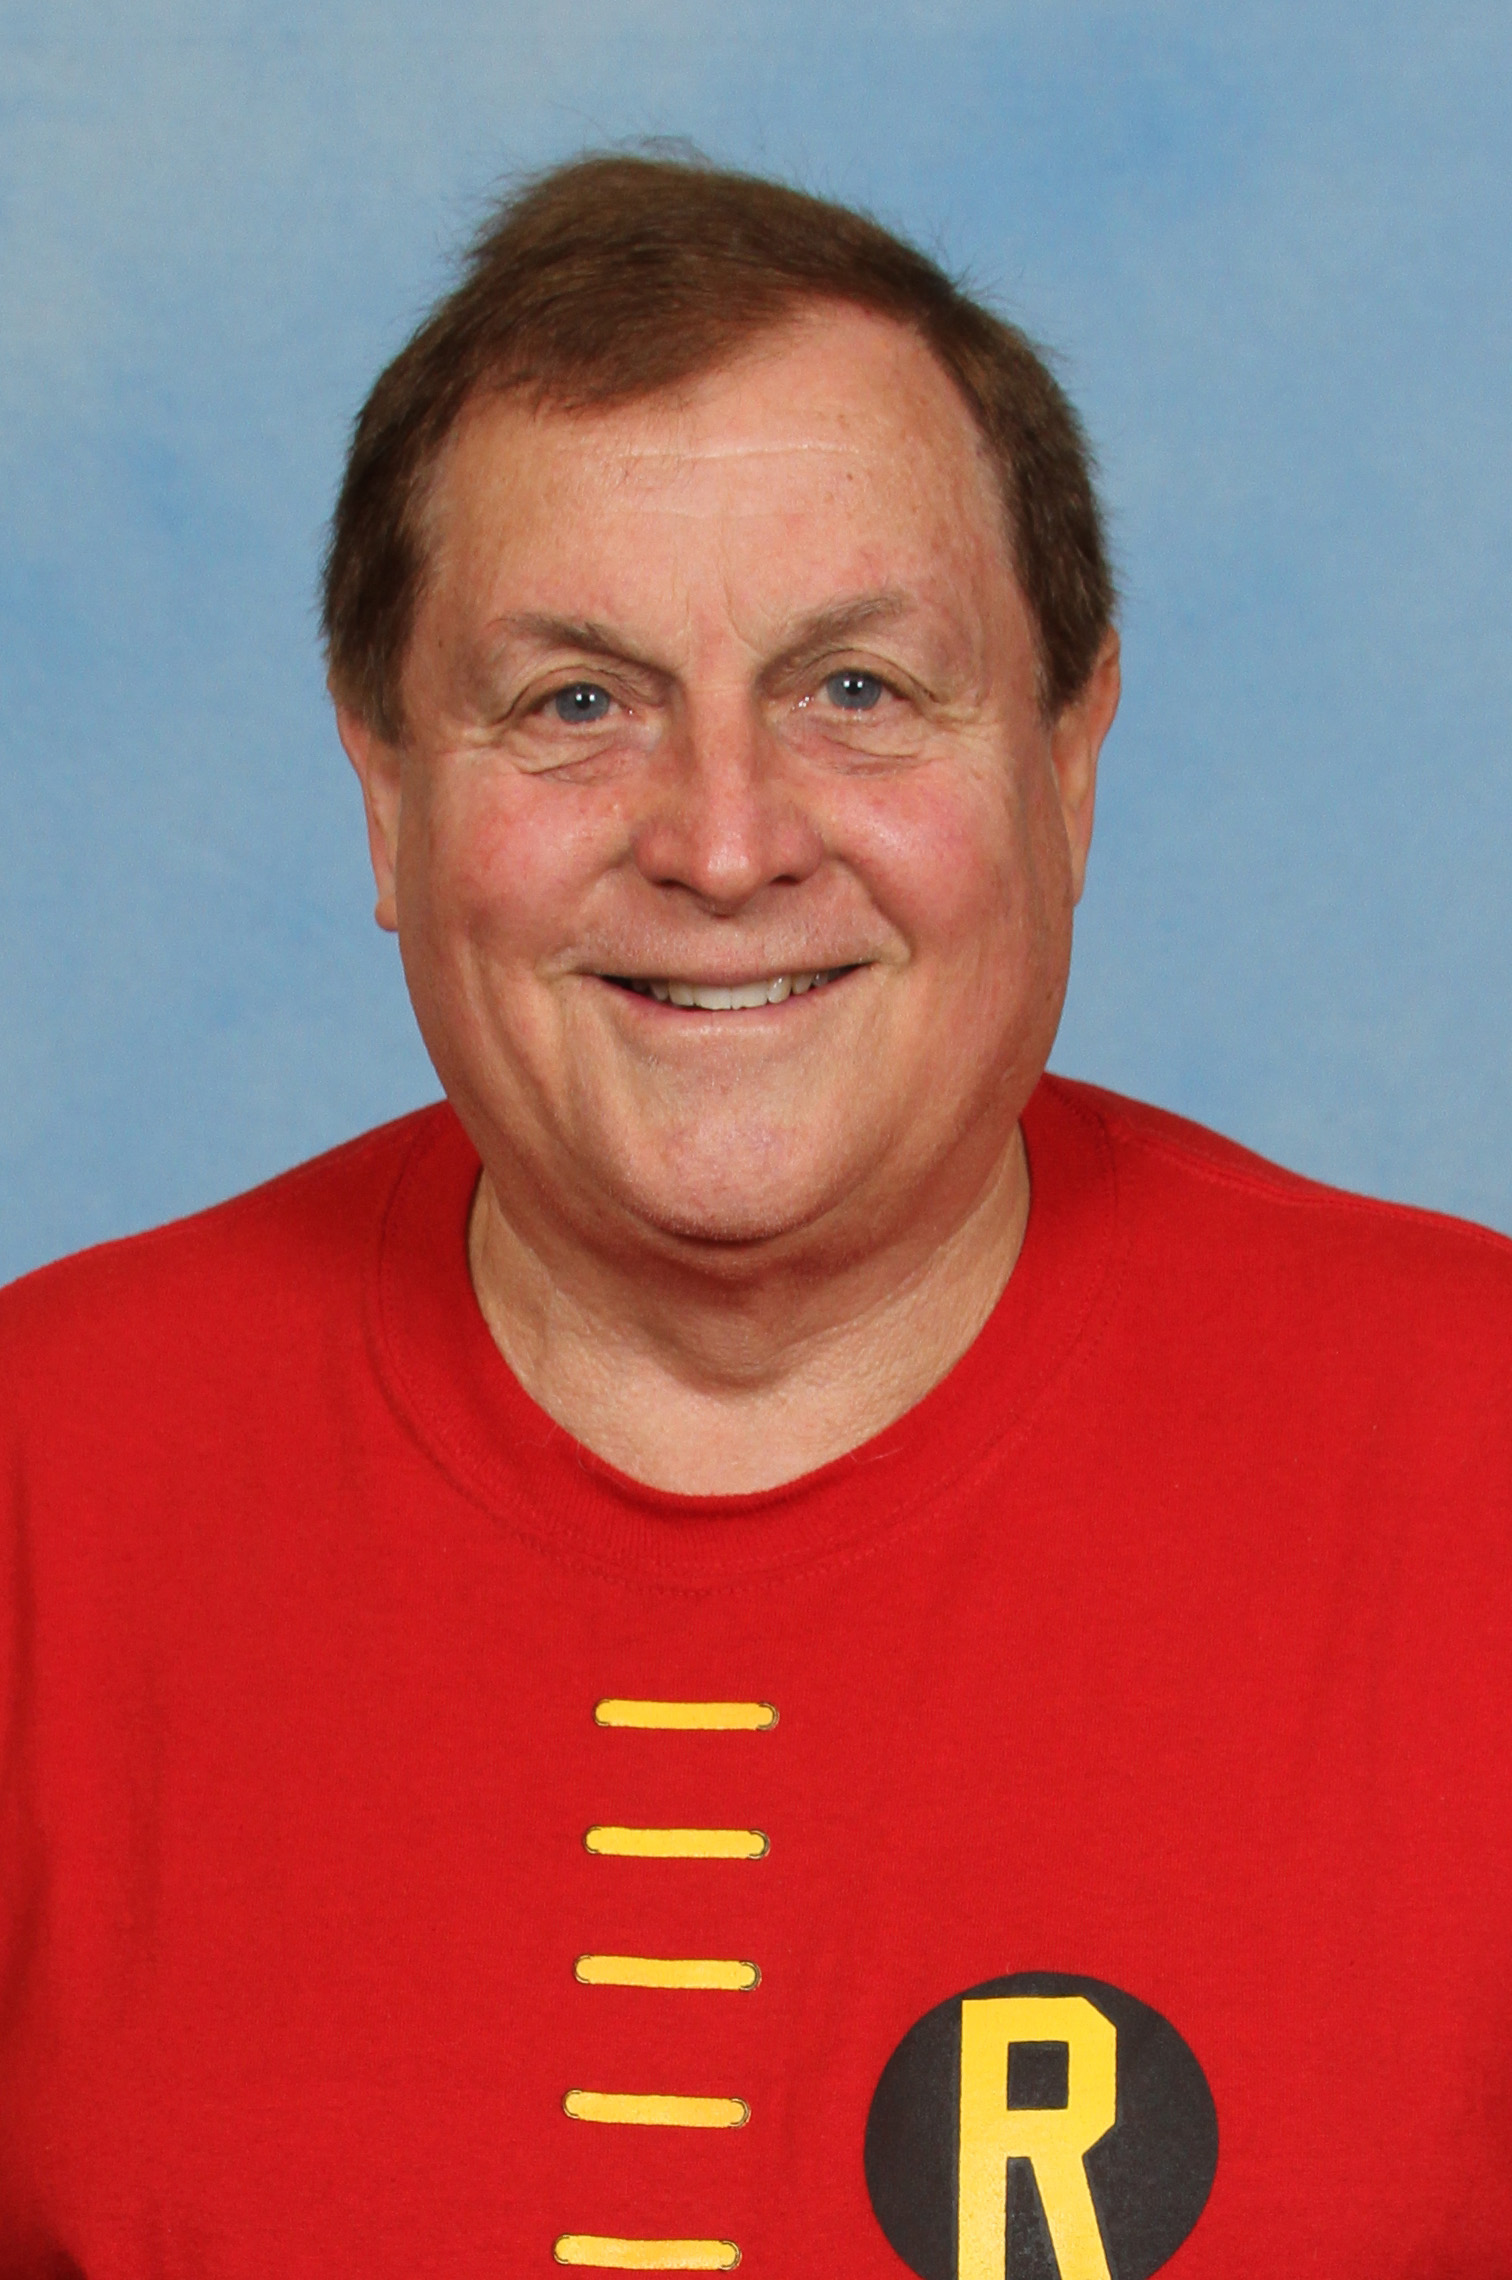 burt ward wikiburt ward adam west, burt ward actor, burt ward wiki, burt ward net worth, burt ward today, burt ward dog food, burt ward imdb, burt ward 2015, burt ward bulge, burt ward website, burt ward book, burt ward shirtless, burt ward dogs, burt ward images, burt ward morreu, burt ward my life in tights